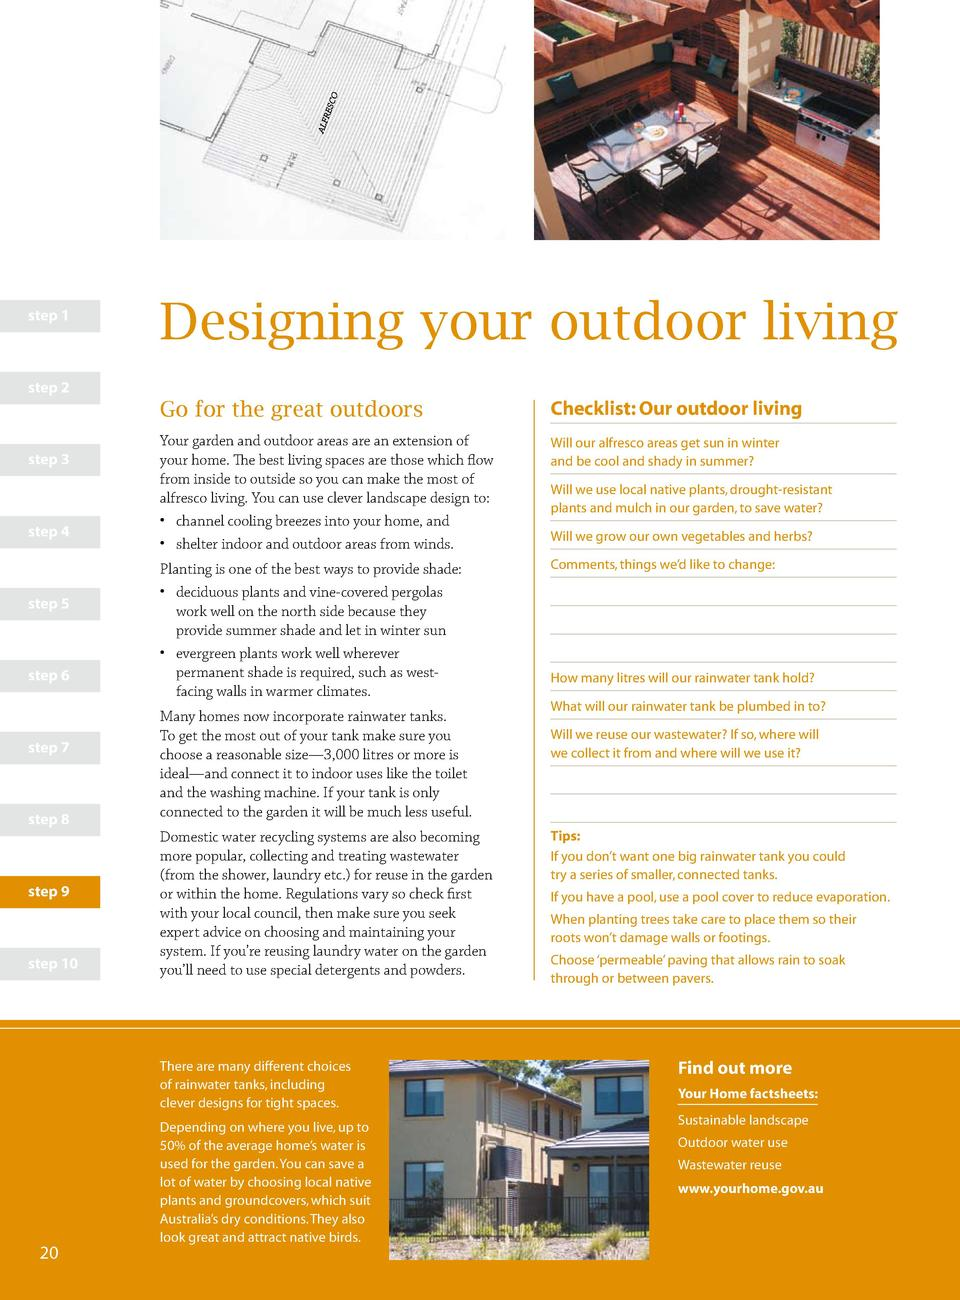 step 1  Designing your outdoor living  step 2  Go for the great outdoors step 3  step 4  step 5  step 6  step 7  step 8  s...